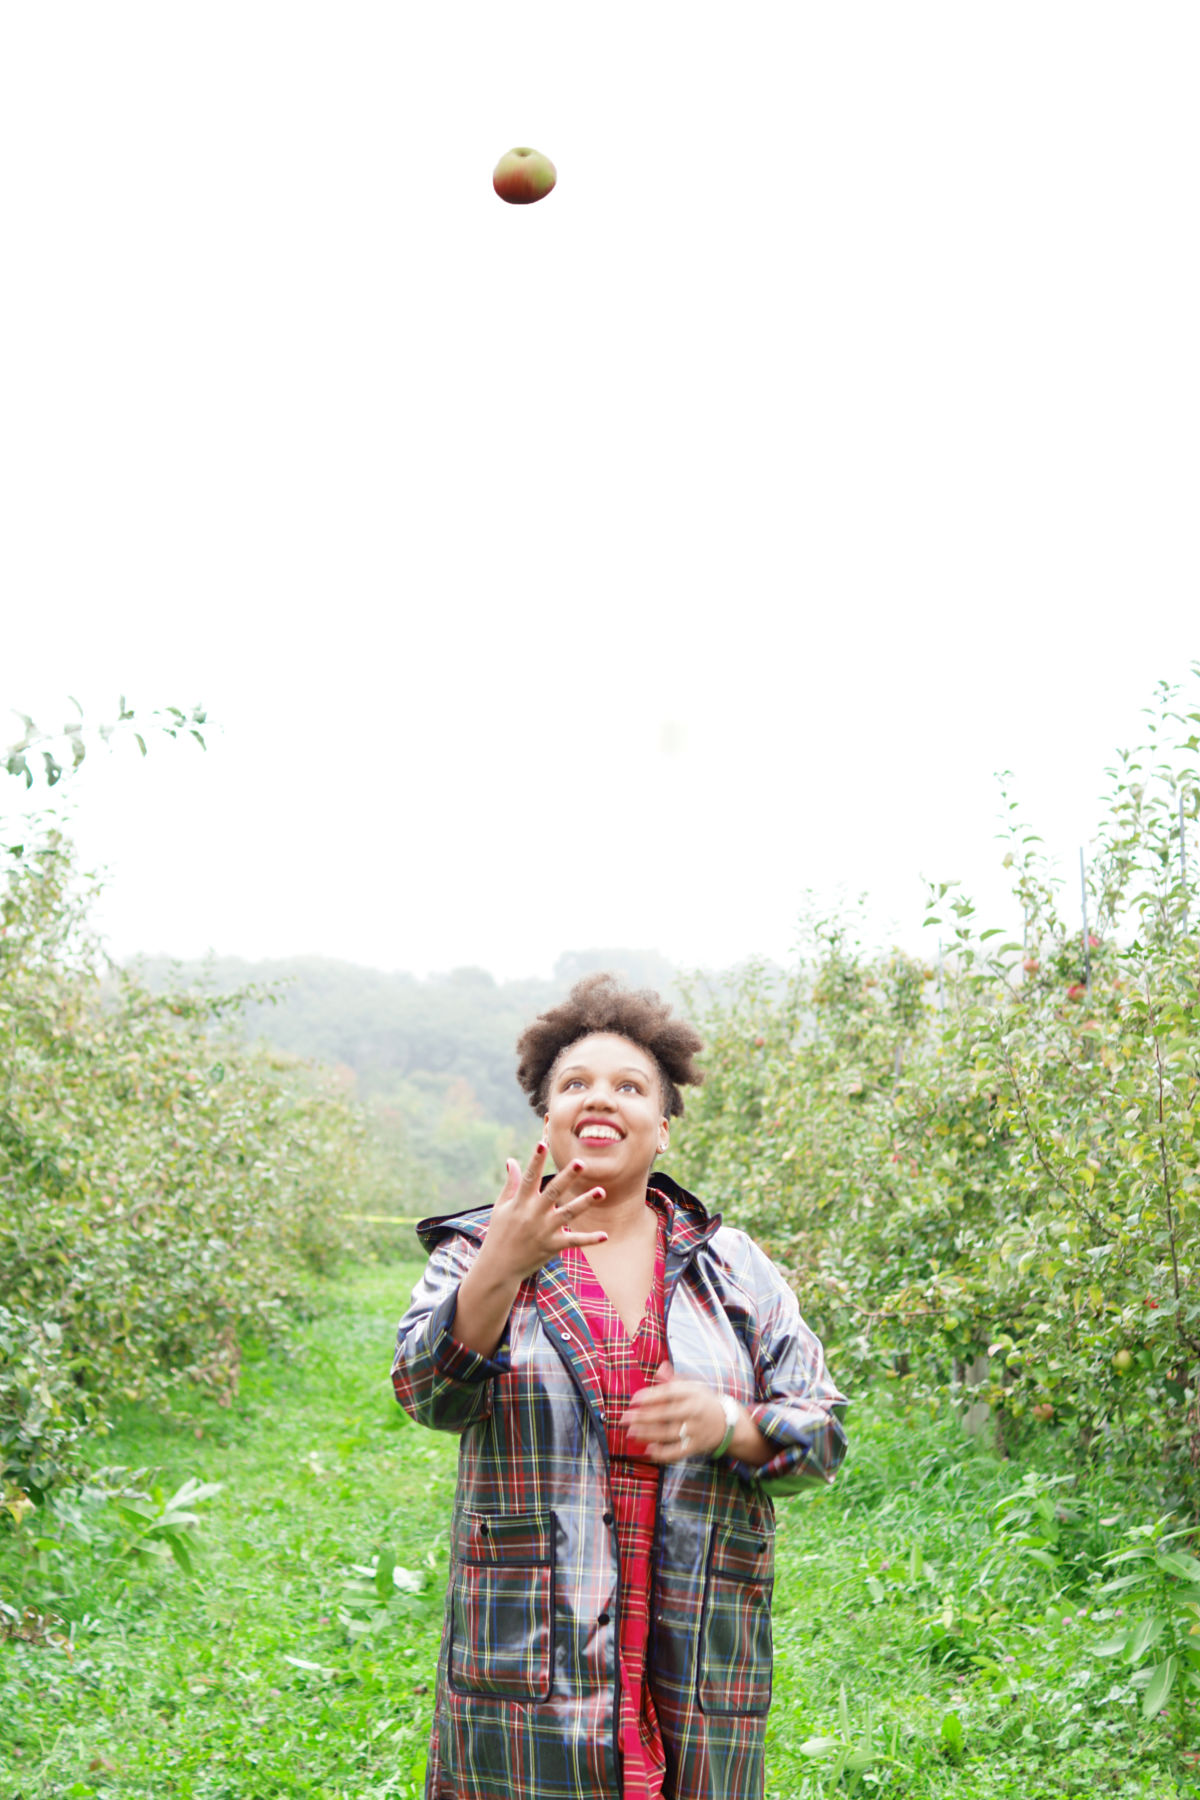 fall foliage, family road trip, adirondacks, hicks orchard, plaid dress, apple picking